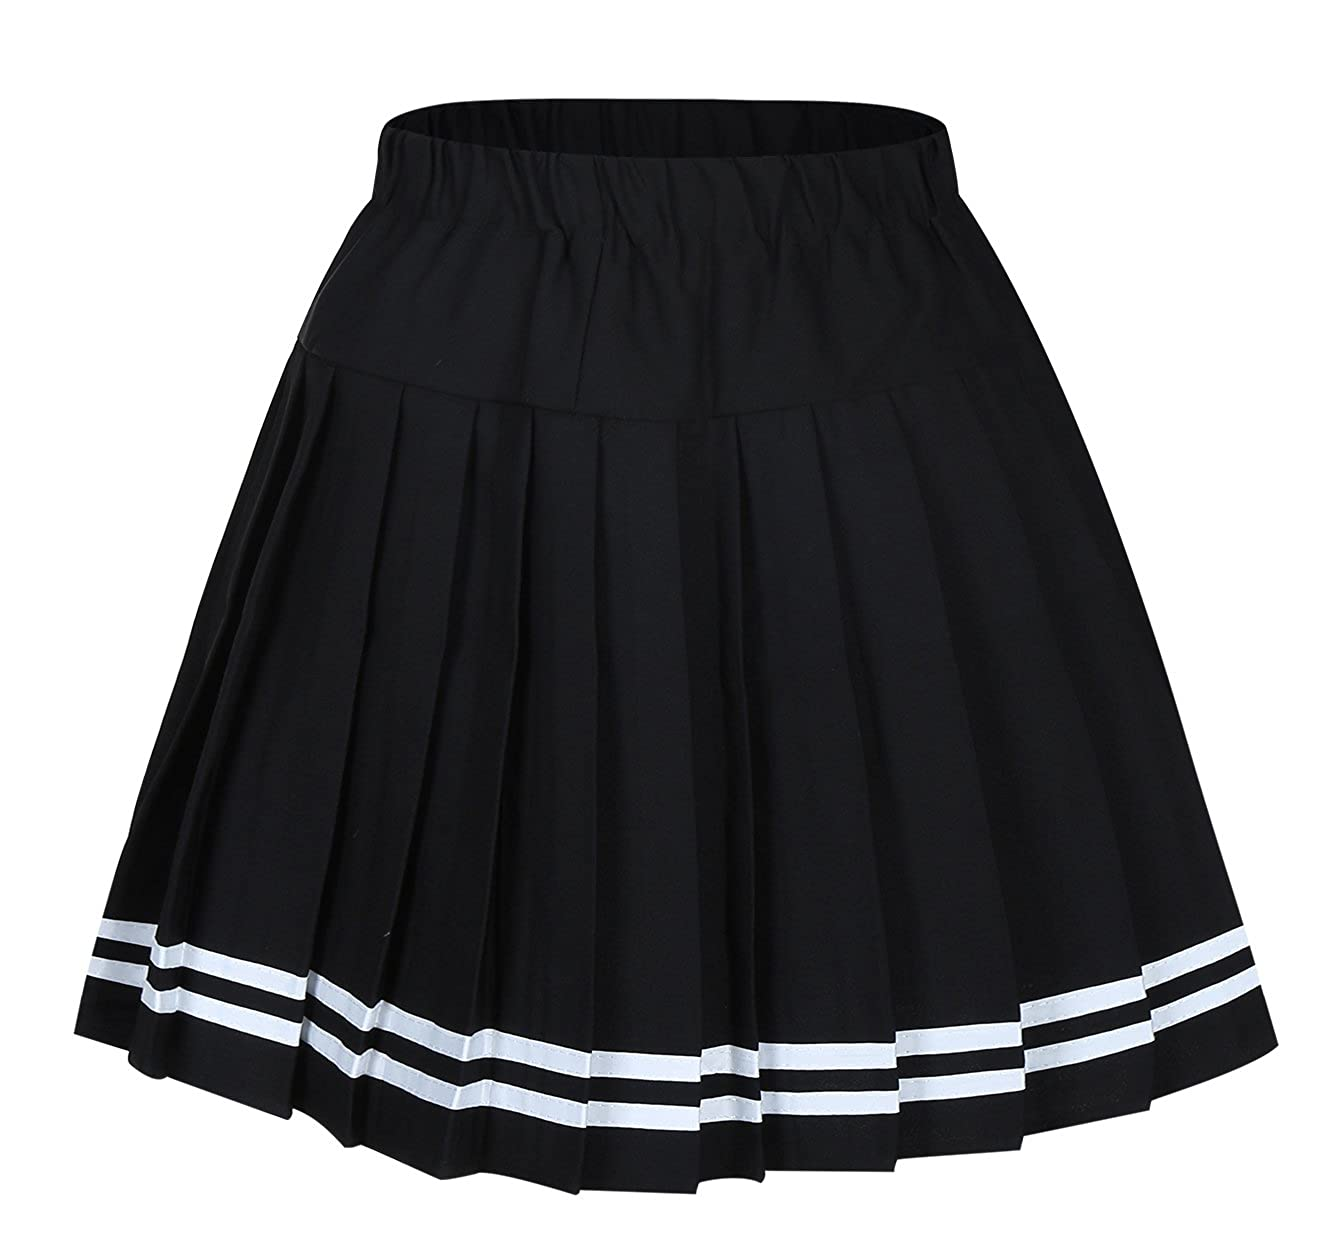 Genetic Los Angeles Women`s Short Plaid Elasticated Pleated Skirt School Uniform HTSK01